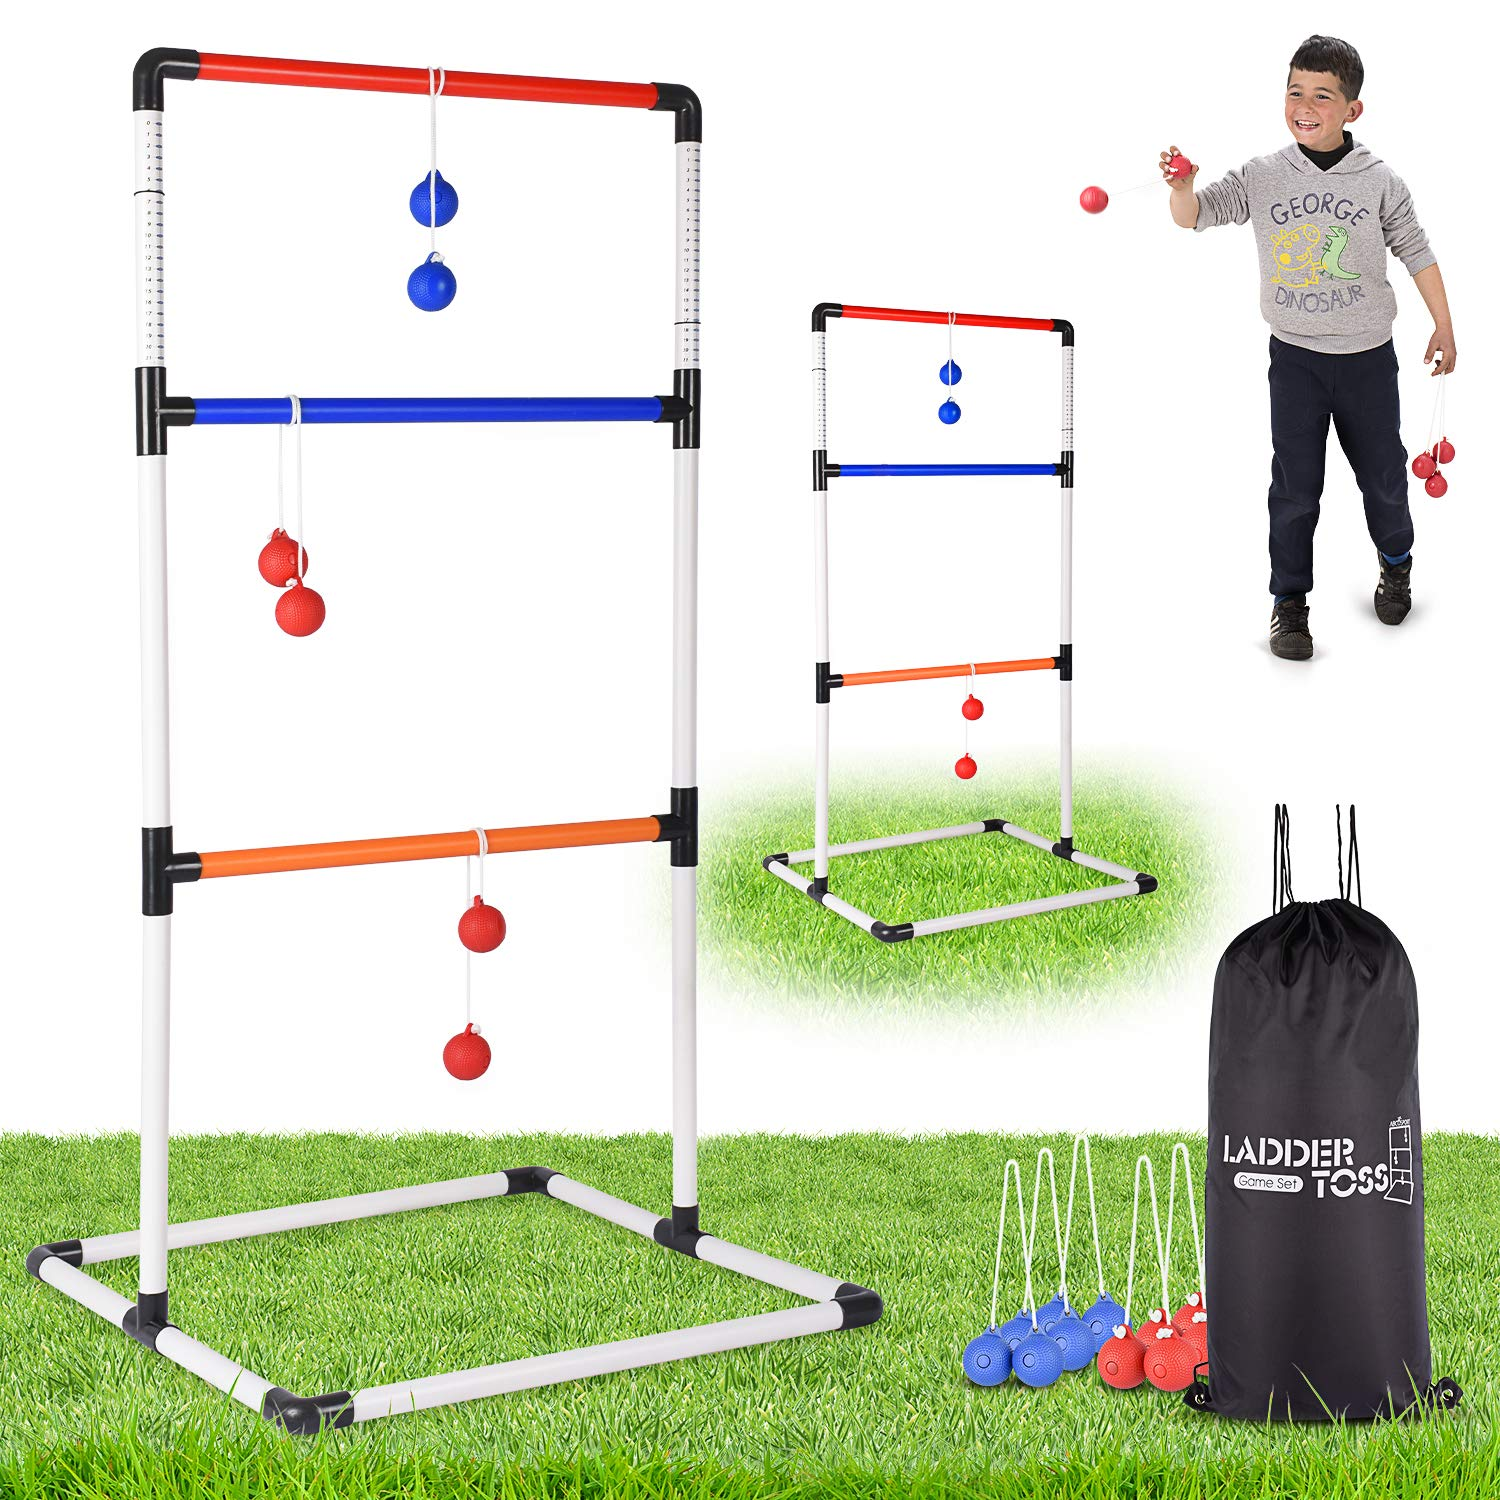 Ladder Toss Ball Game Set - Fun Game for Yard, Lawn, Backyard, Party, Indoor, Outdoor - 6 Toss Bolos with Thick Rope - Built-in Score Tracker - With Backpack Bag - Easy Seag - Easy Setup - 2-4 Player by Abco Tech